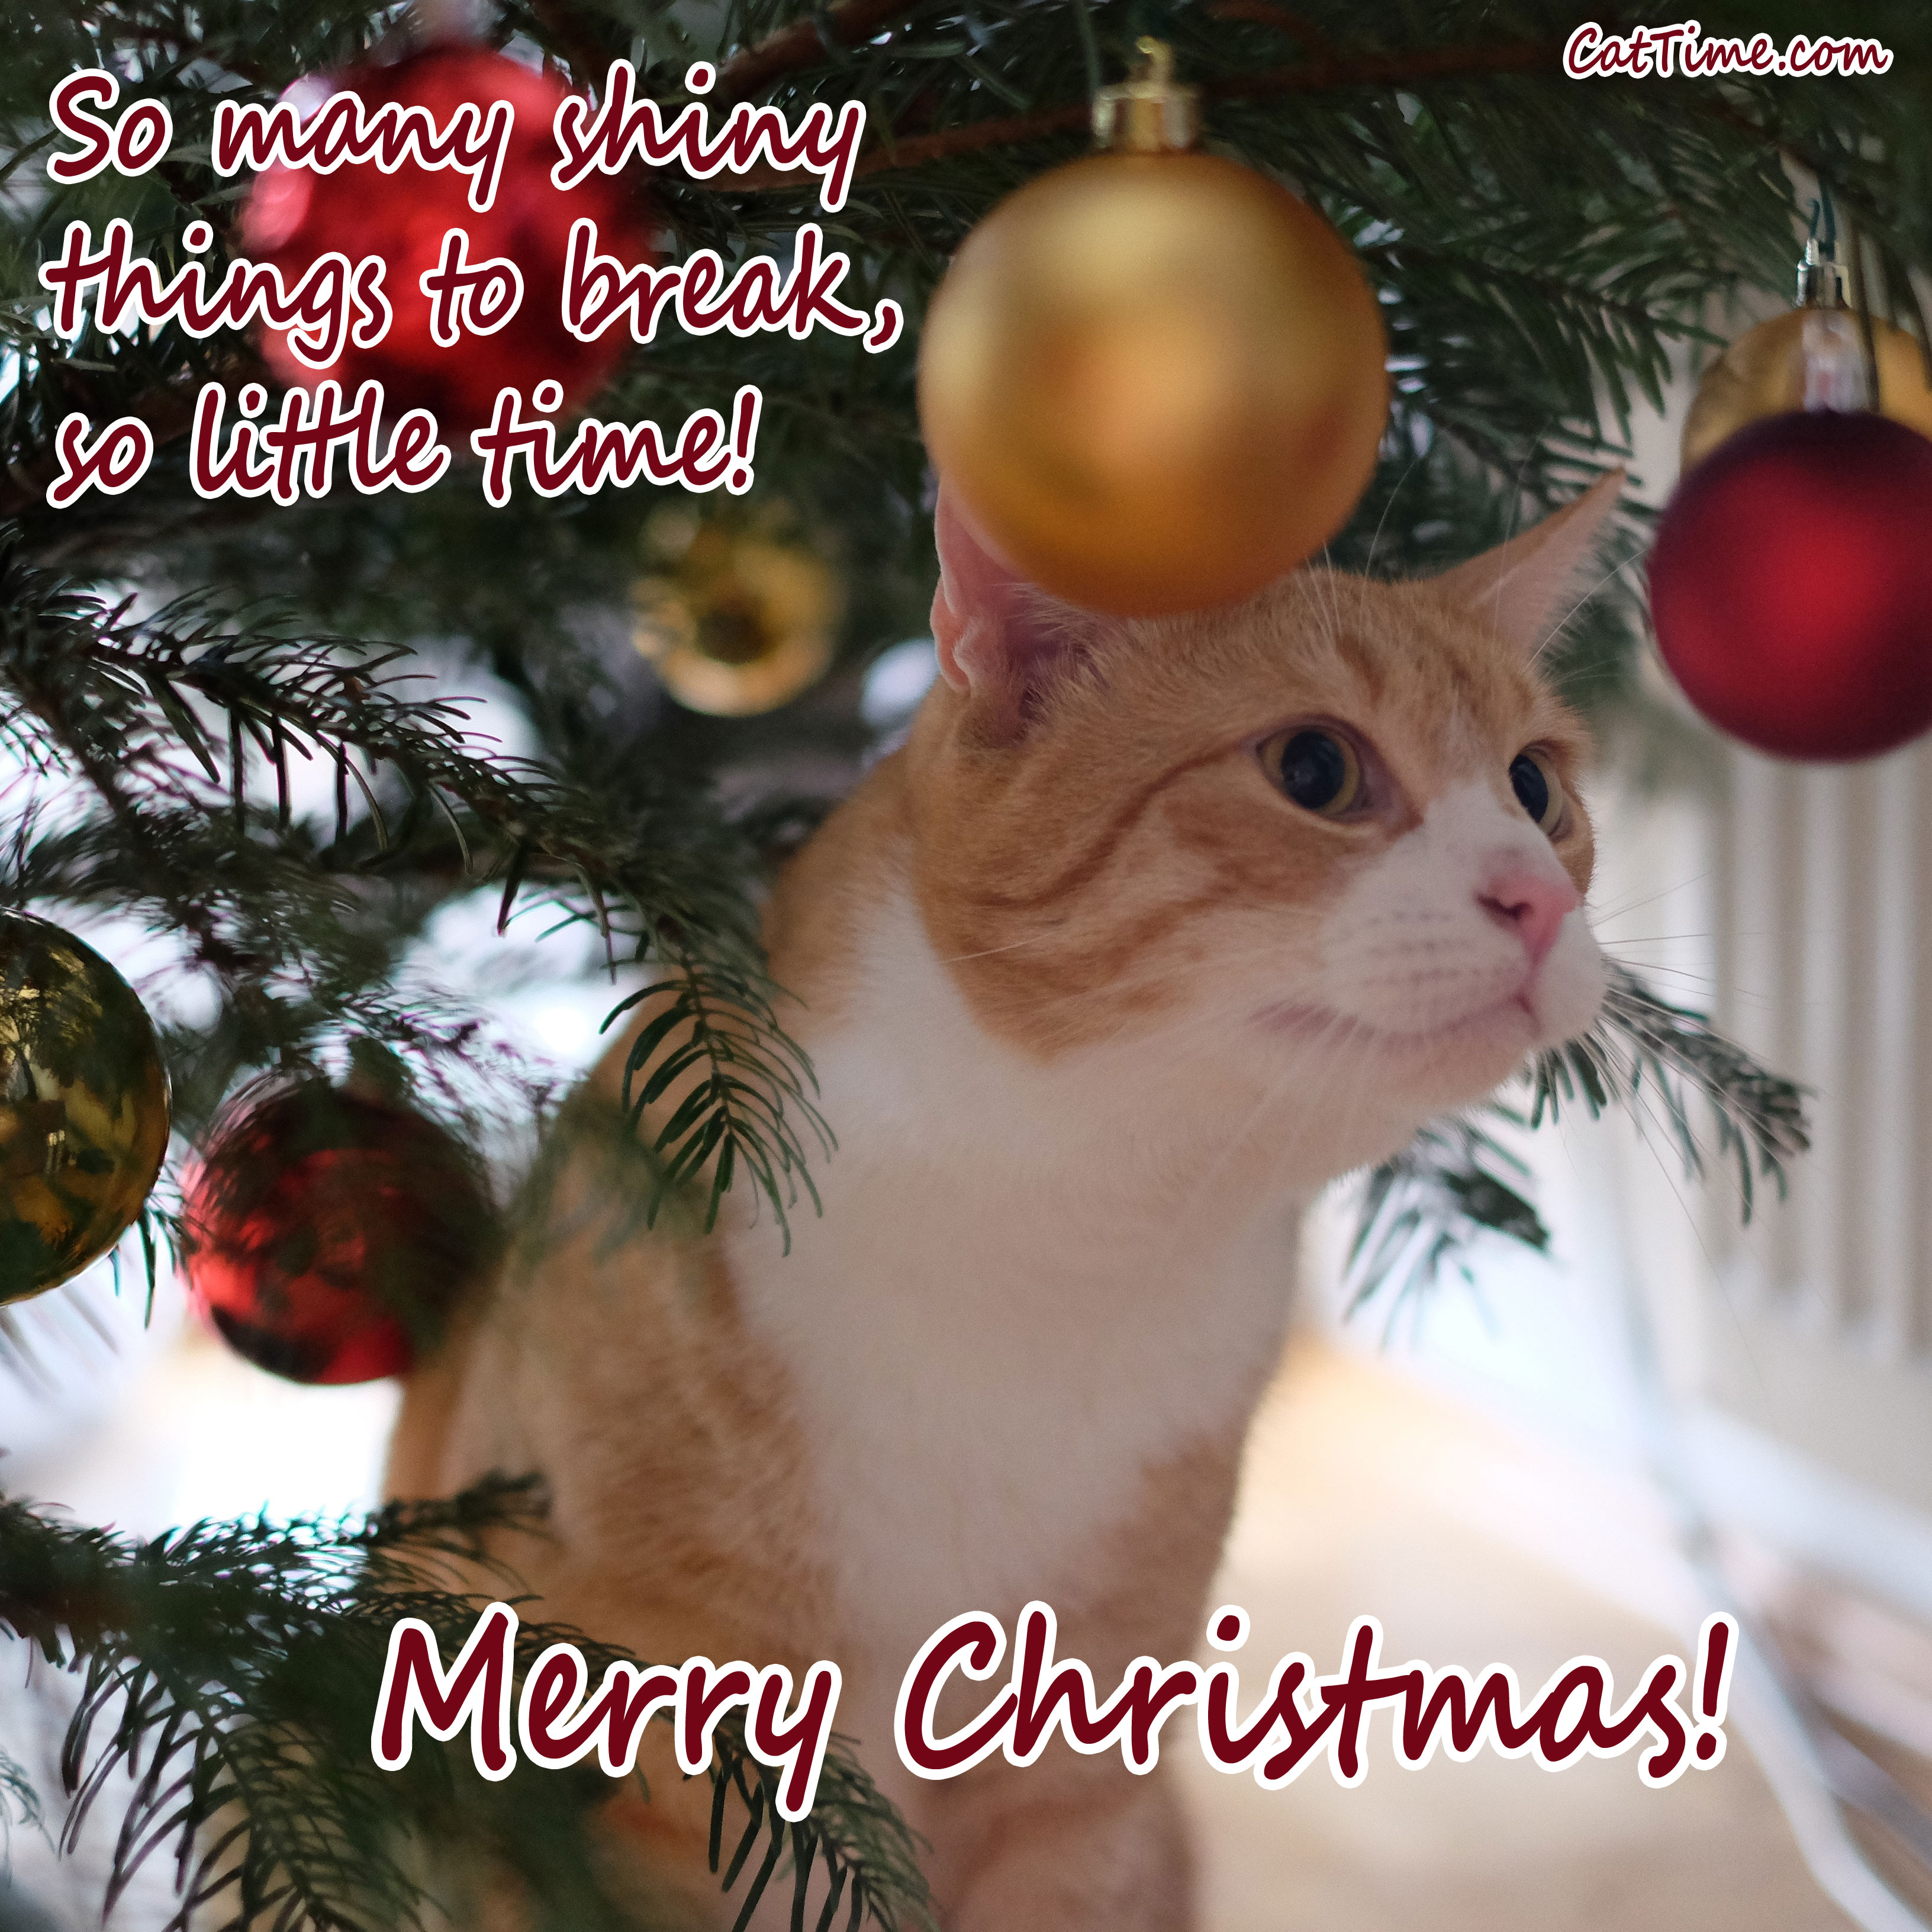 15 cat christmas cards you can share with your friends and family so many shiny things m4hsunfo